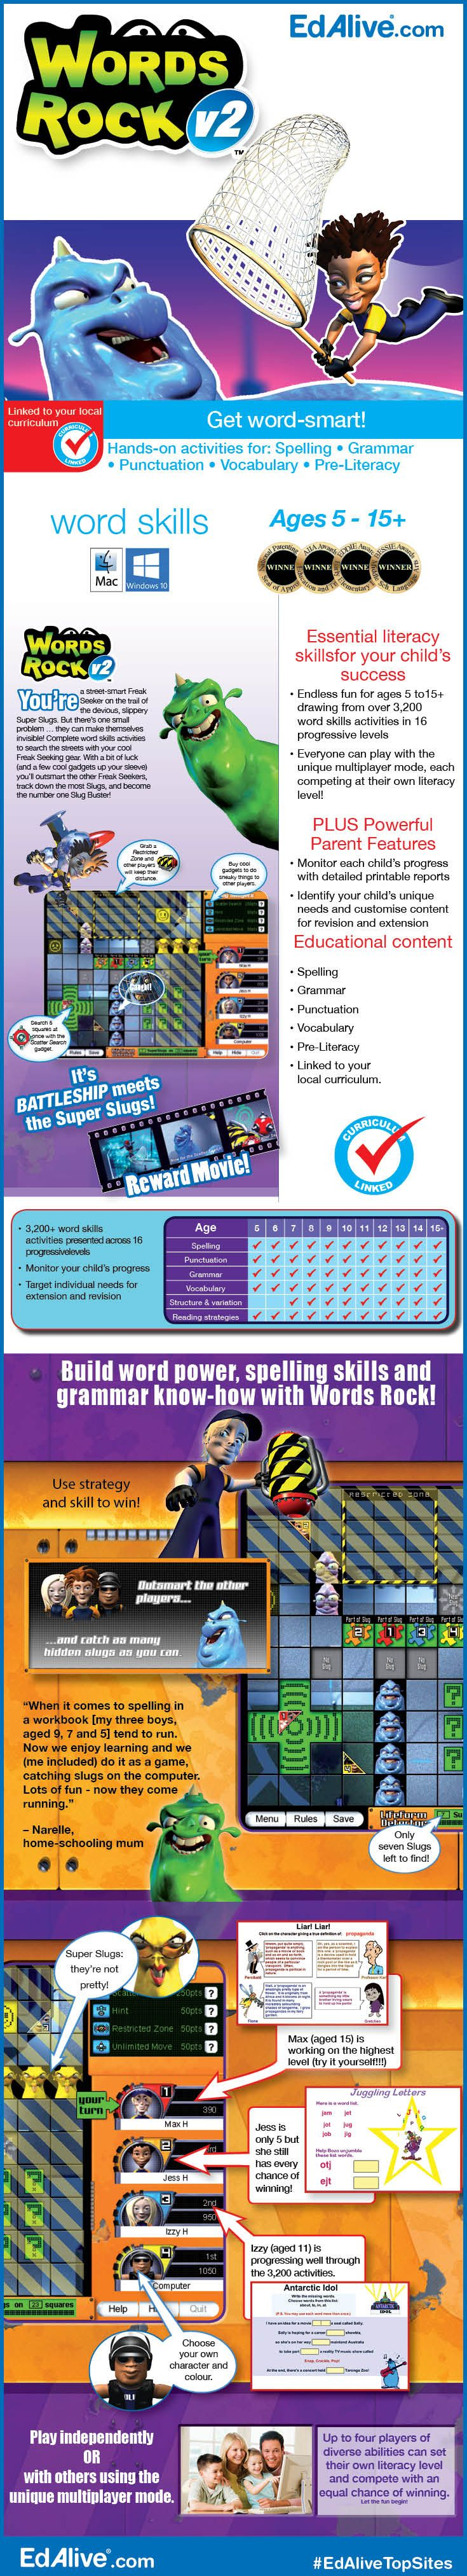 Build word power, spelling skills and grammar know-know with Words Rock! Outsmart your competitors as you solve your share of over 3,200 hands-on word skill activities. Words spring to life in this quirky, exciting single and multiplayer game. Get started straight out of the box, or take advantage of the powerful diagnostic and reporting capabilities to zero in on your child's learning needs. #WordSkills #EdAliveTopSites